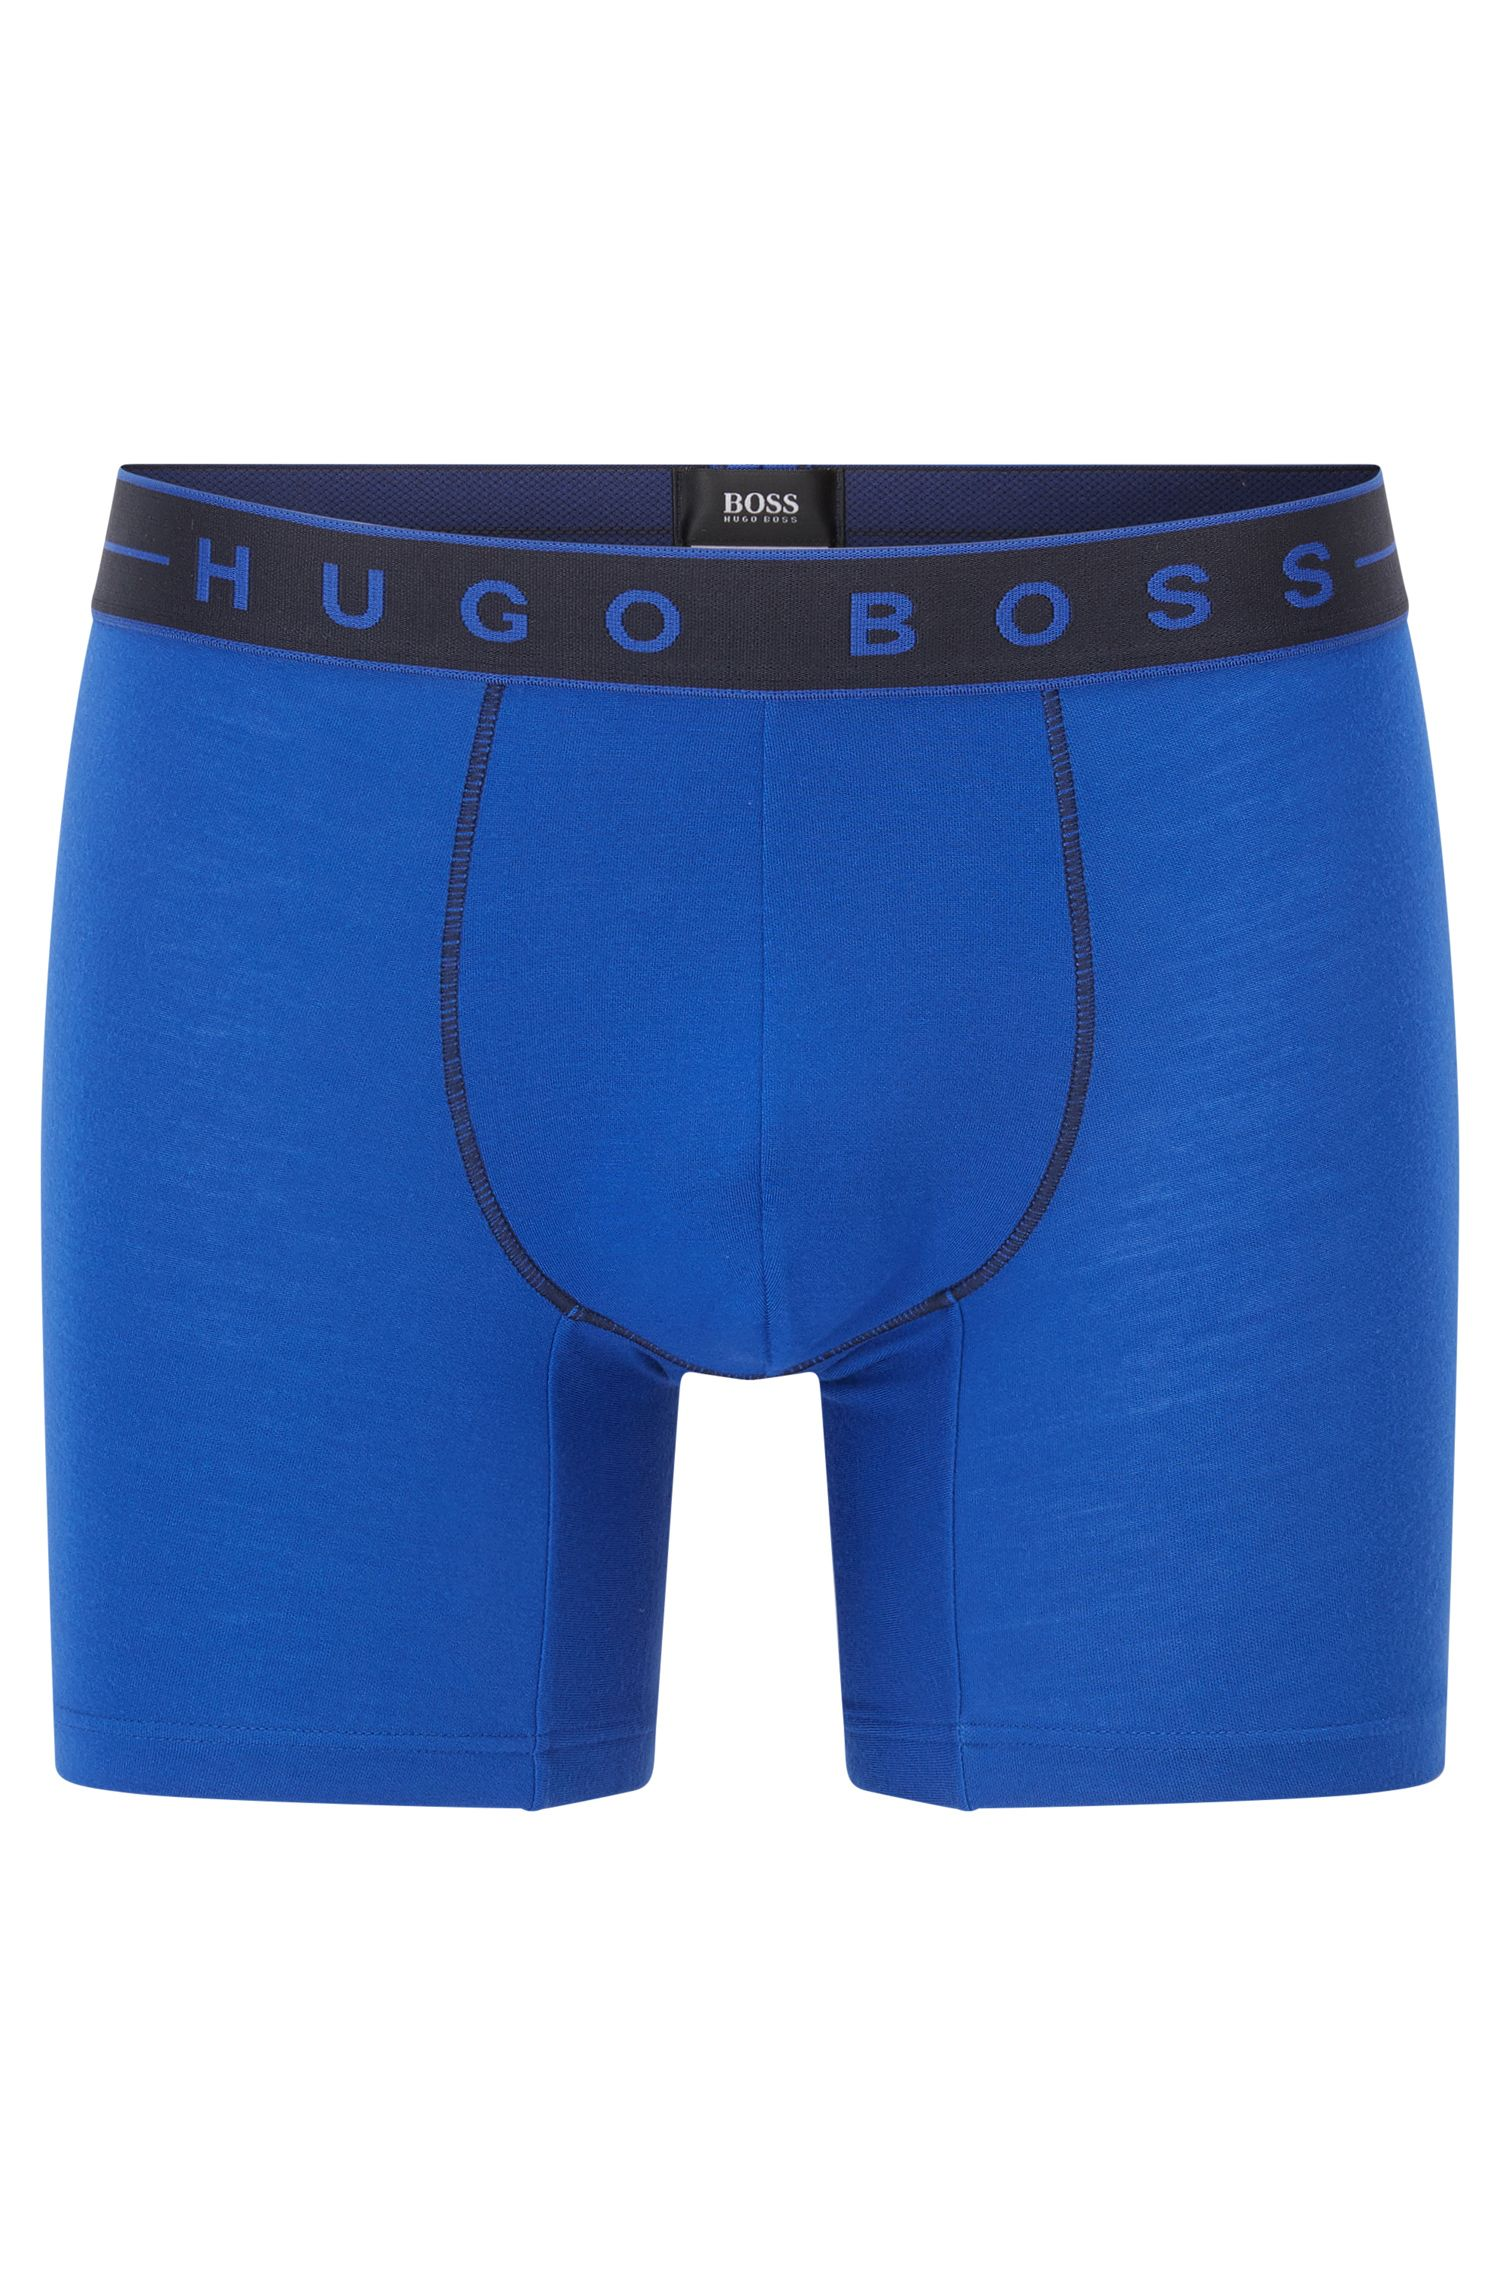 Boxers en jacquard simple, Bleu